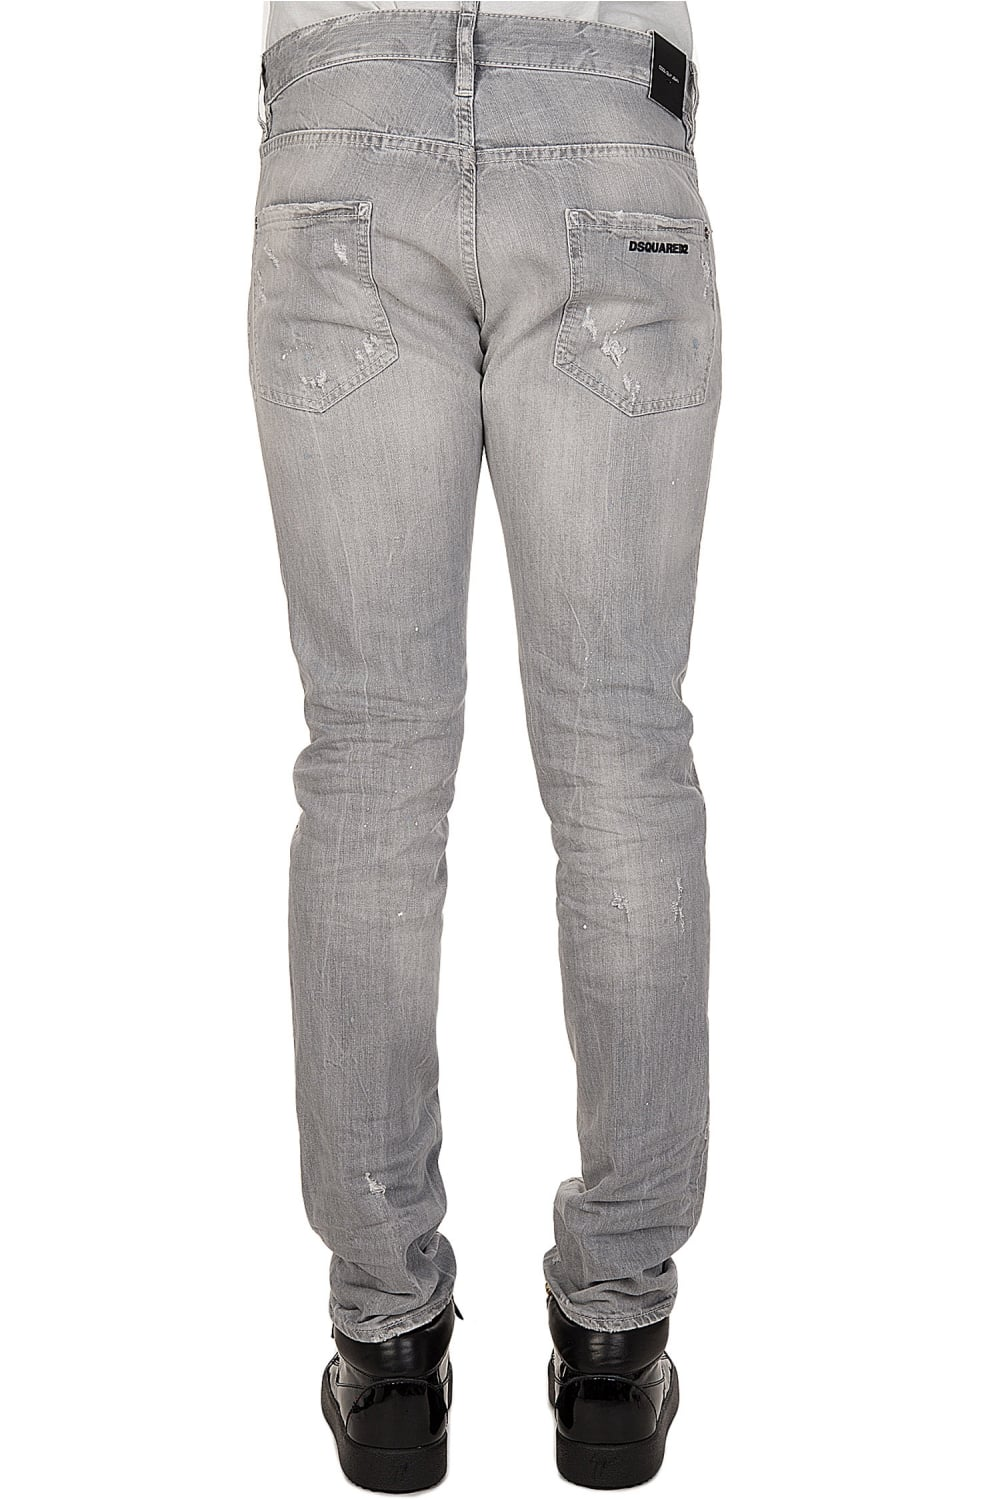 Black And Grey Jeans - Jeans Am